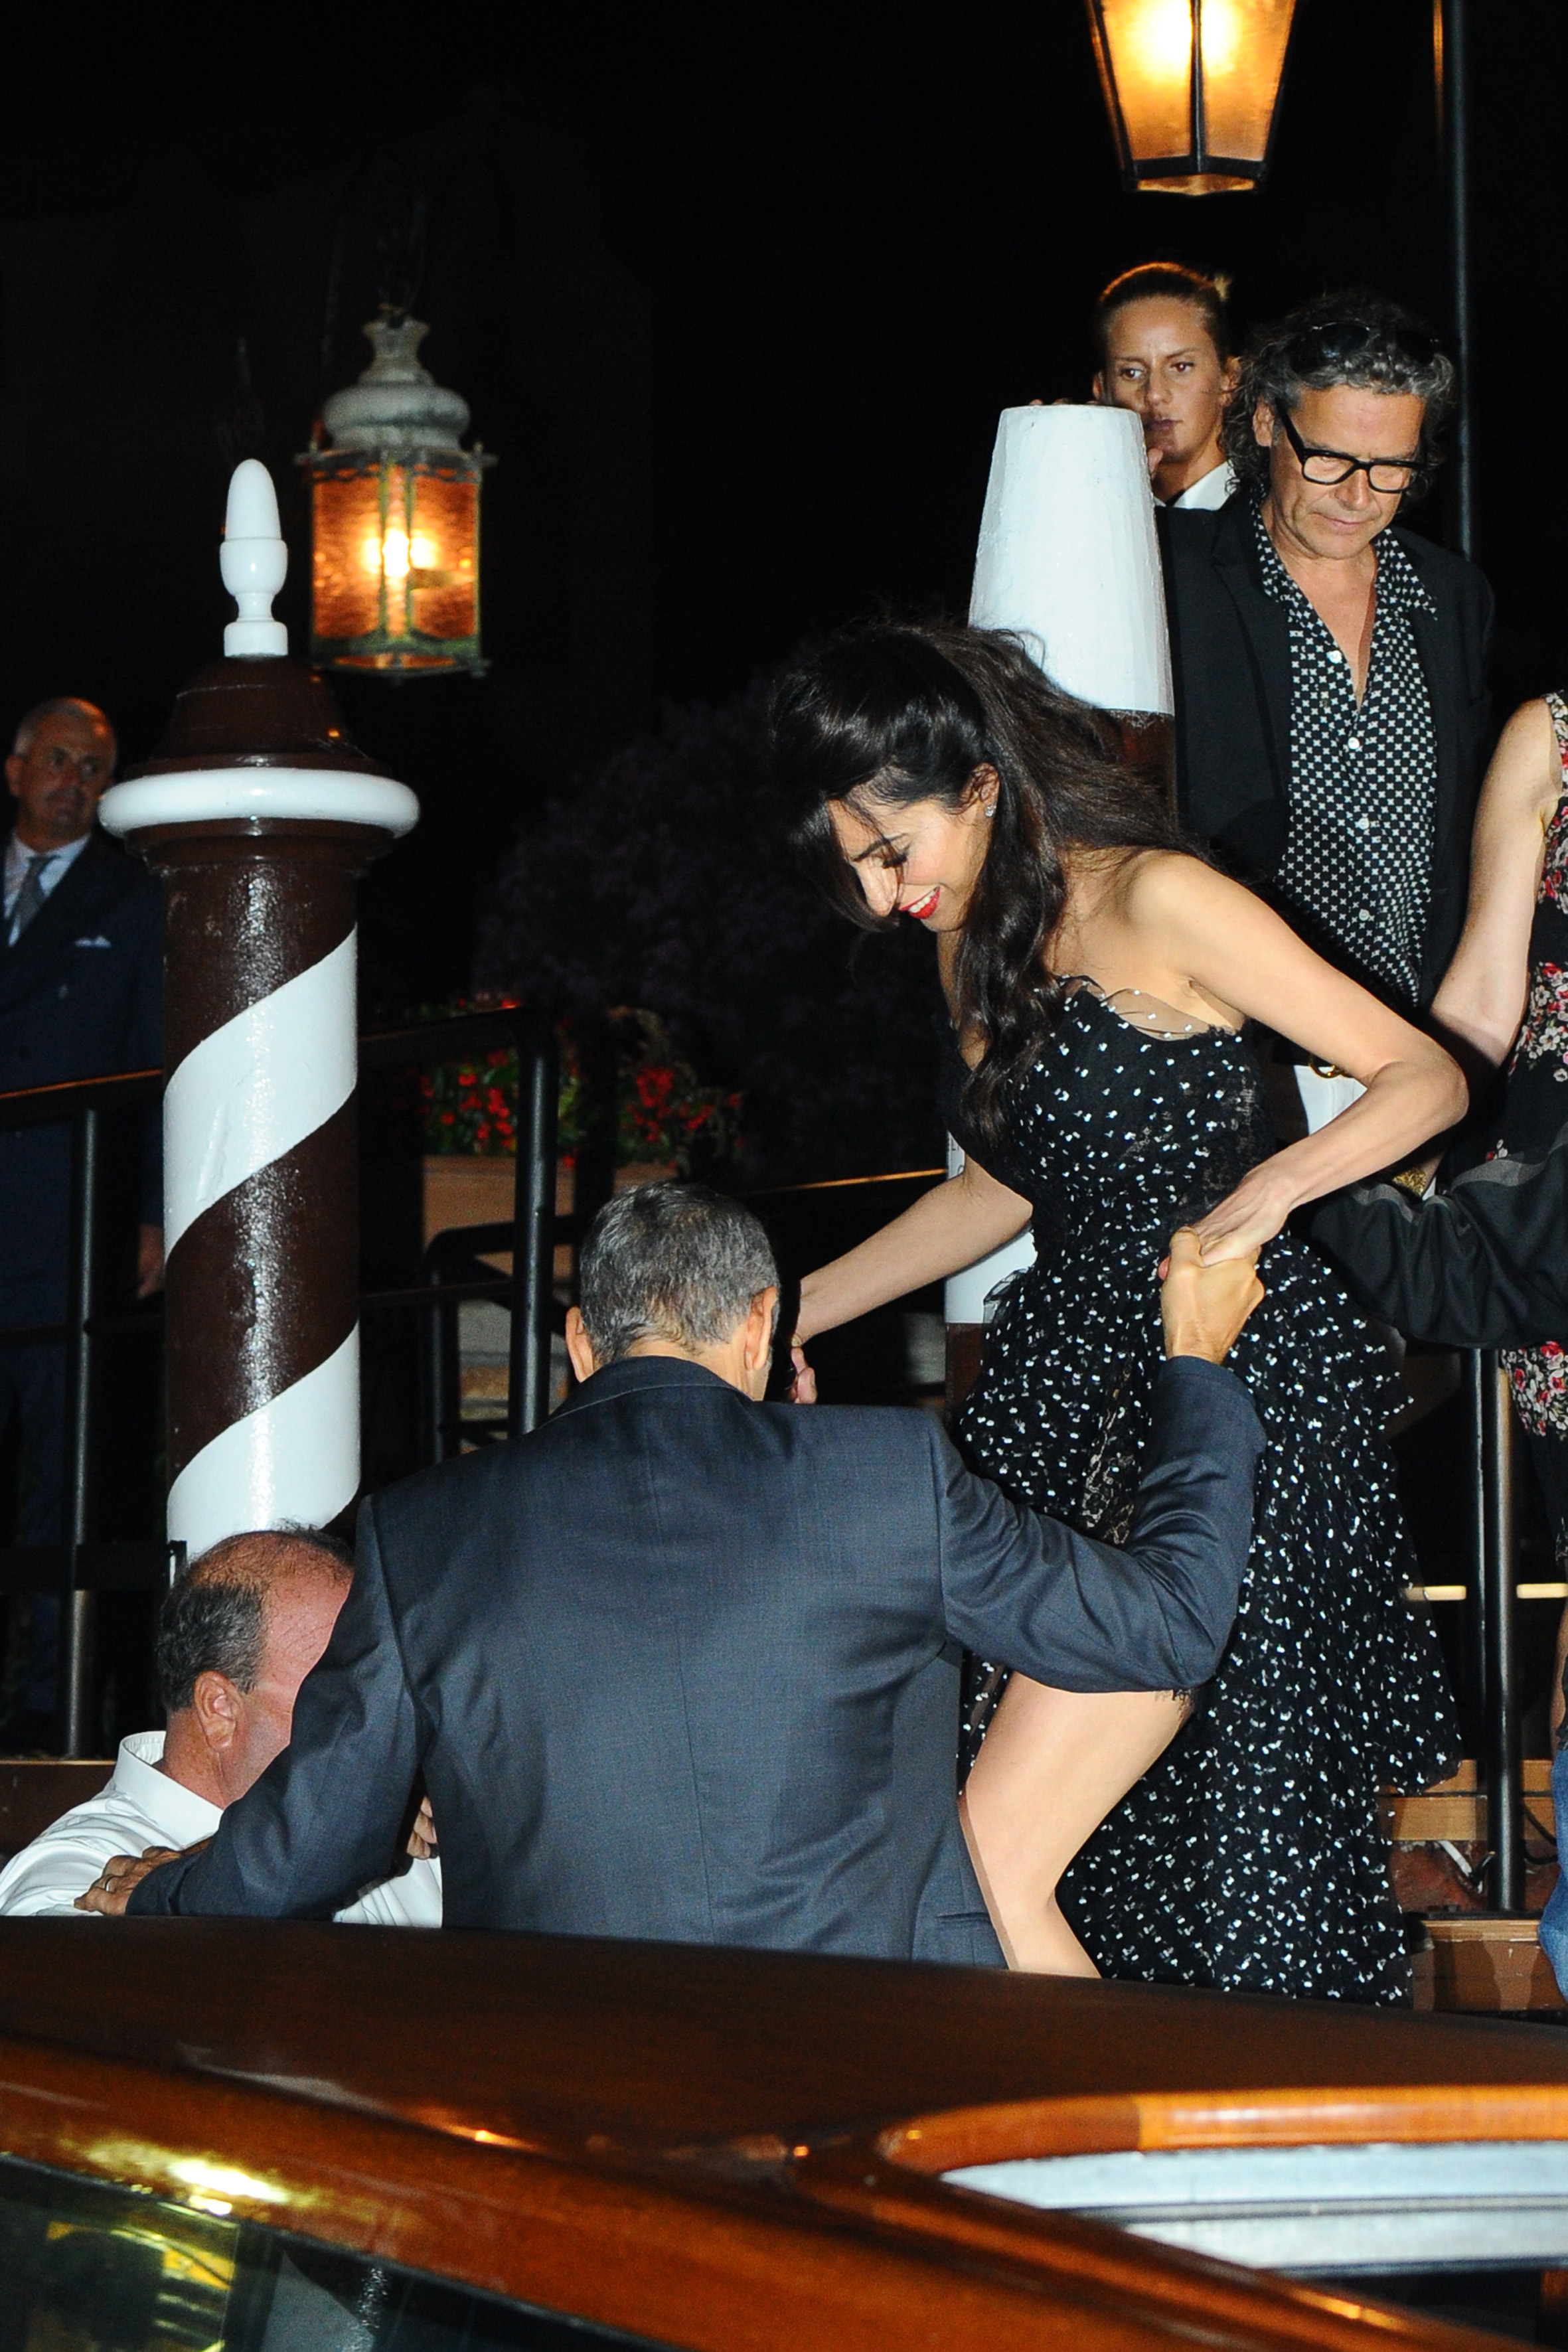 George Clooney and Amal Alamuddin are seen leaving their hotel on August 31, 2017 in Venice, Italy. <P> Pictured: George Clooney and Amal Alamuddin <B>Ref: SPL1566358  310817  </B><BR/> Picture by: Splash News<BR/> </P><P> <B>Splash News and Pictures</B><BR/> Los Angeles:310-821-2666<BR/> New York:212-619-2666<BR/> London:870-934-2666<BR/> <span id=